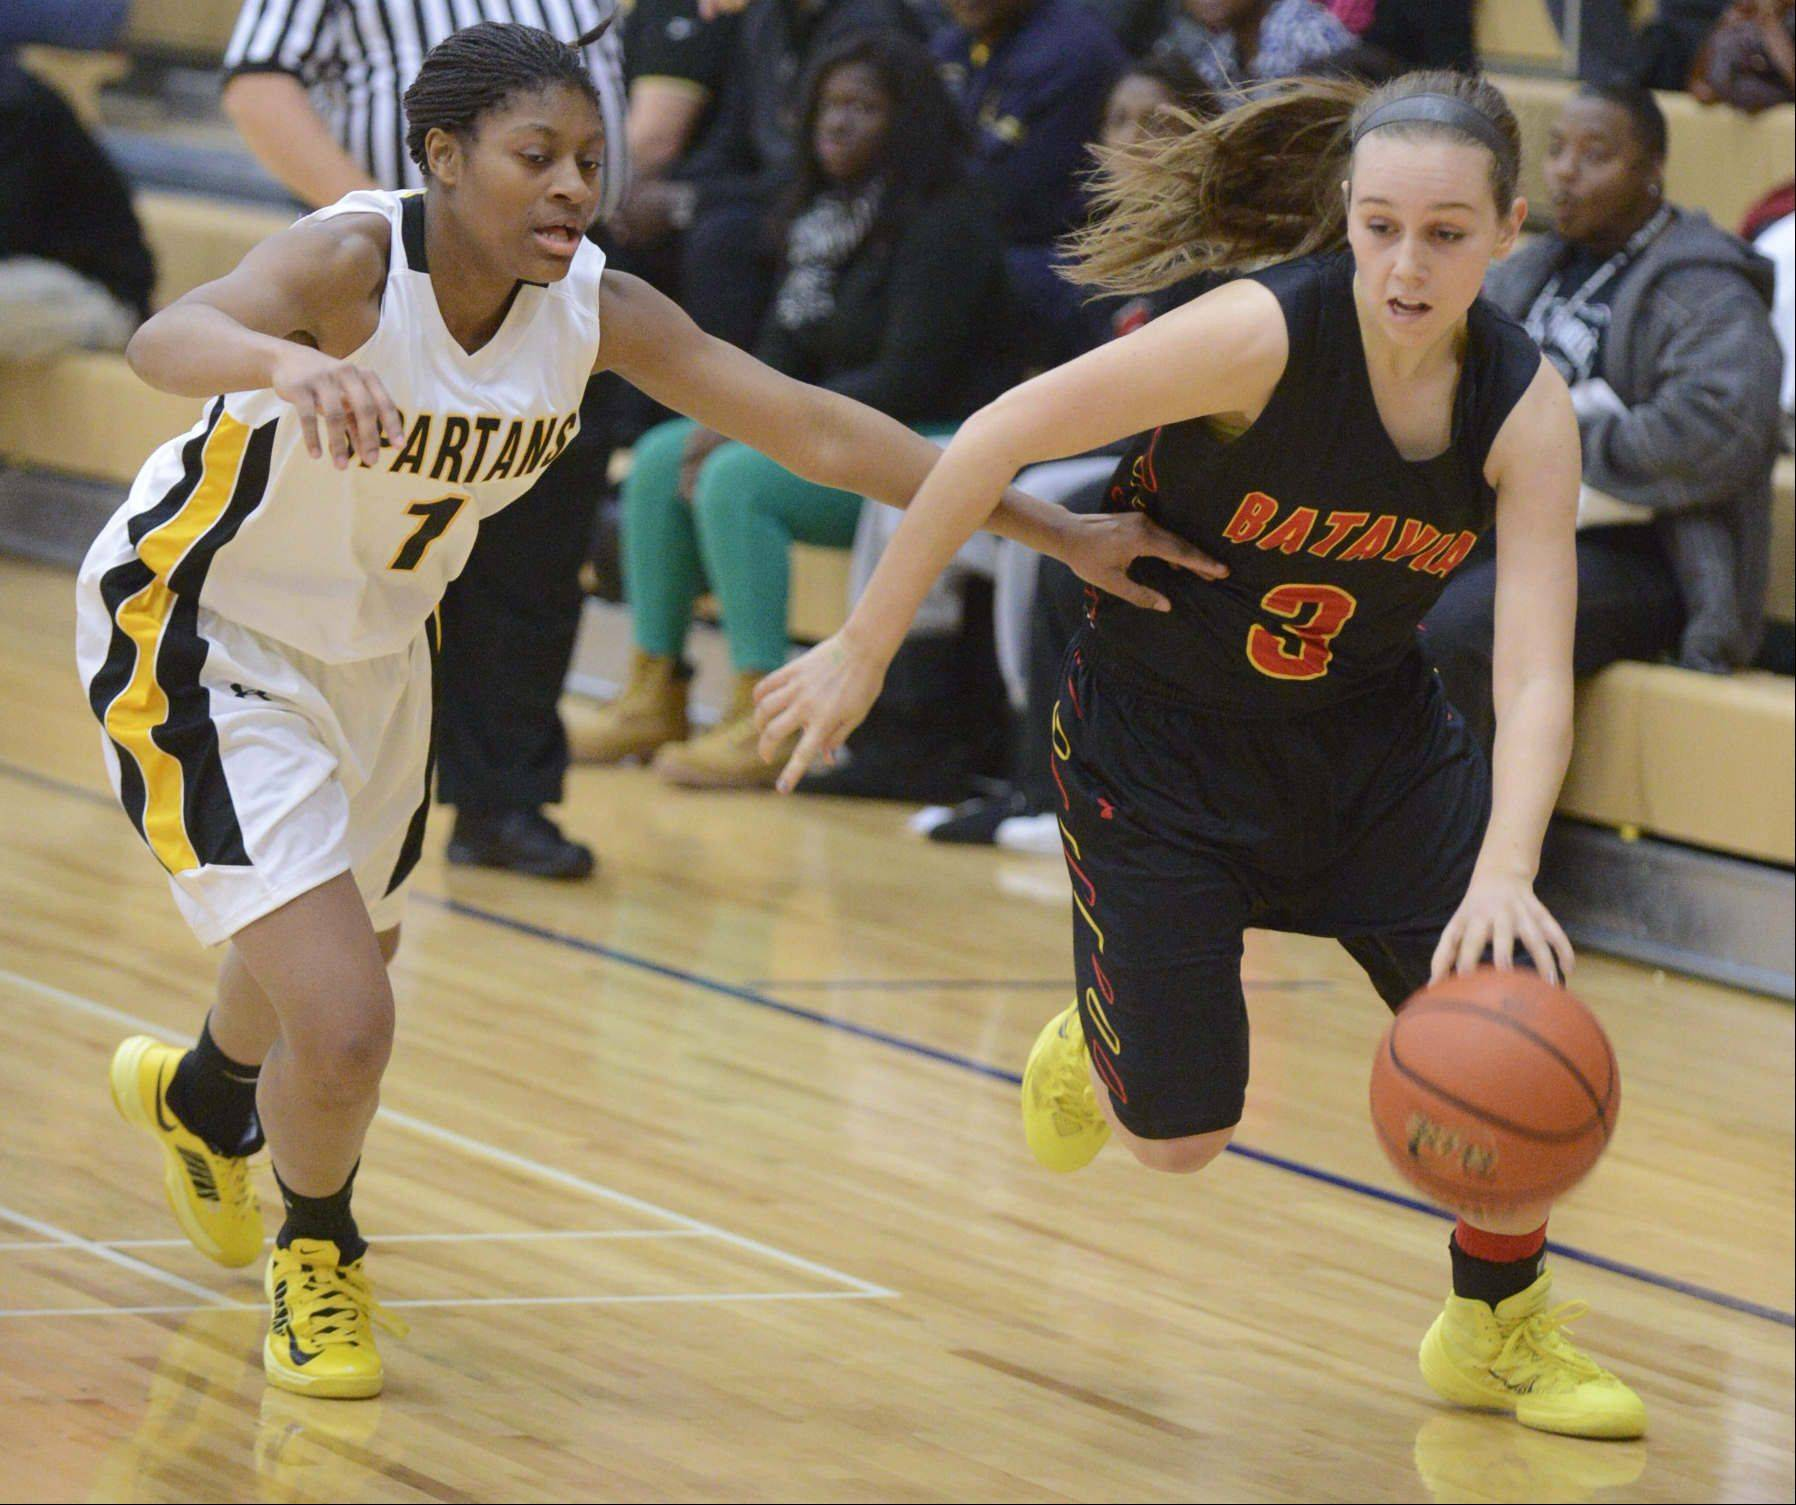 Images from the Batavia vs. Marian Catholic girls basketball game Wednesday, December 18, 2013.